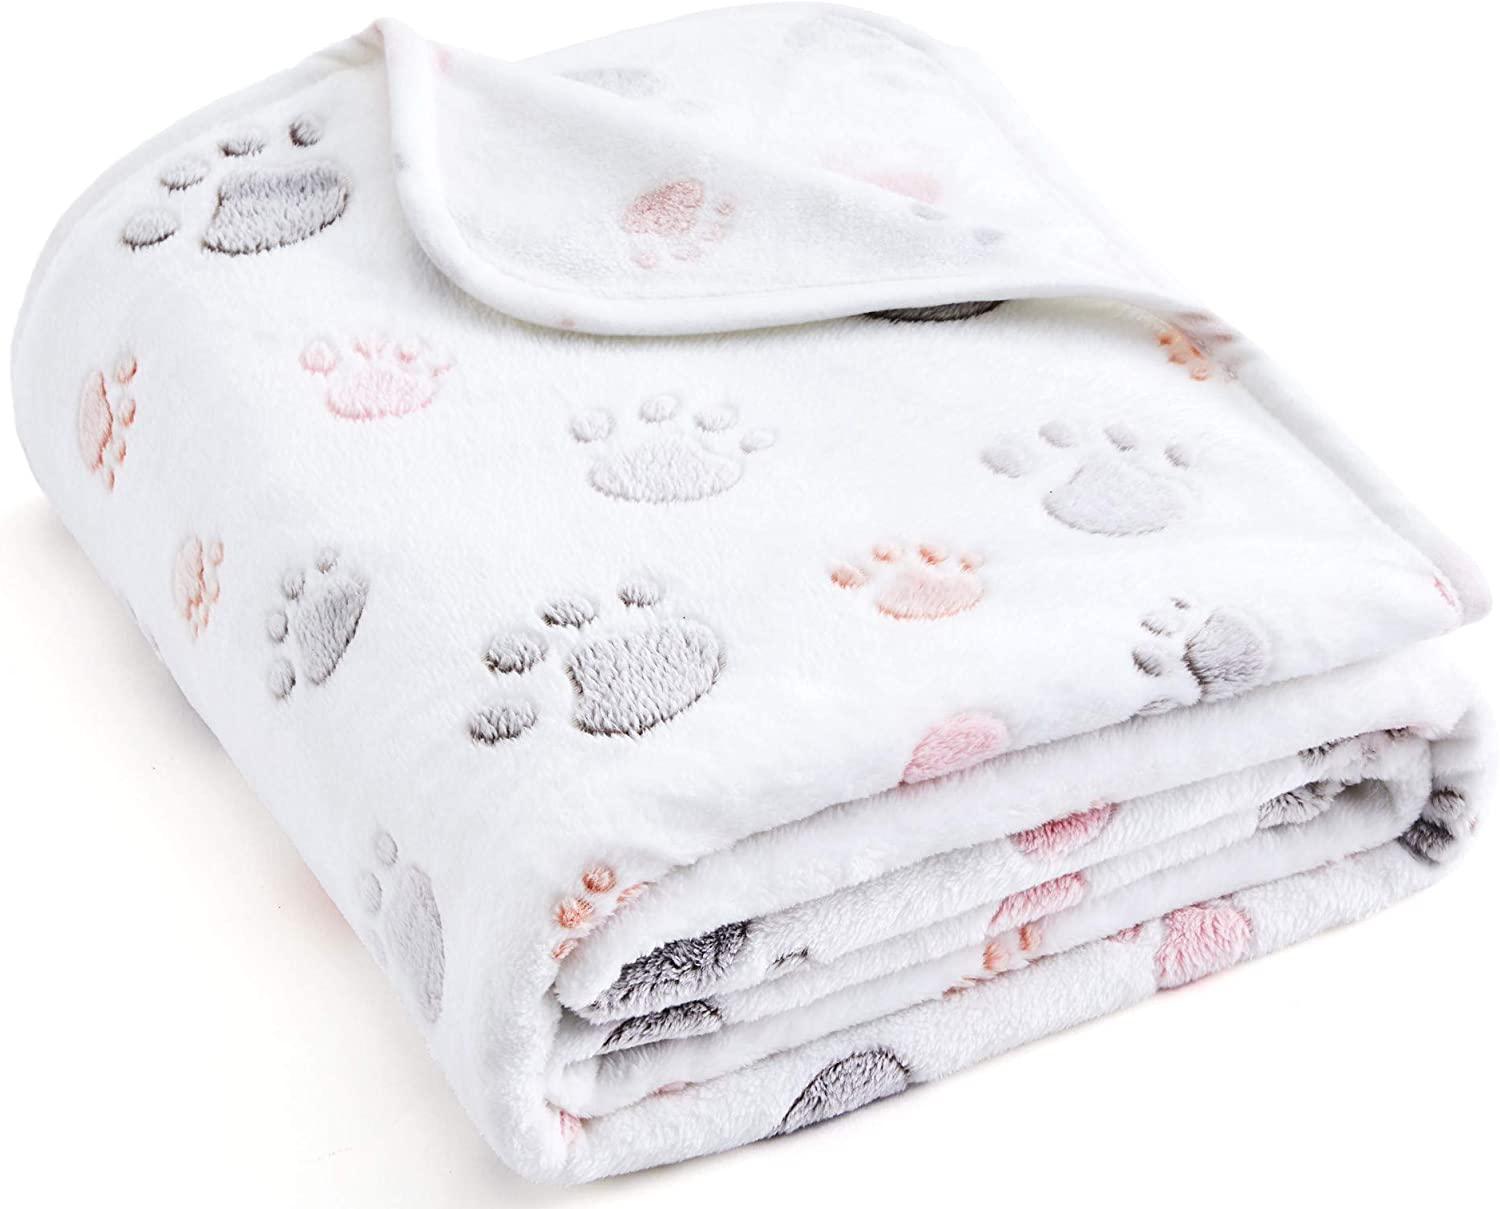 """Allisandro 350 GSM-Super Soft and Premium Fuzzy Flannel Fleece Pet Dog Blanket, The Cute Print Design Washable Fluffy Blanket for Puppy Cat Kitten Indoor or Outdoor, White, 39"""" x 31"""" : Pet Supplies"""